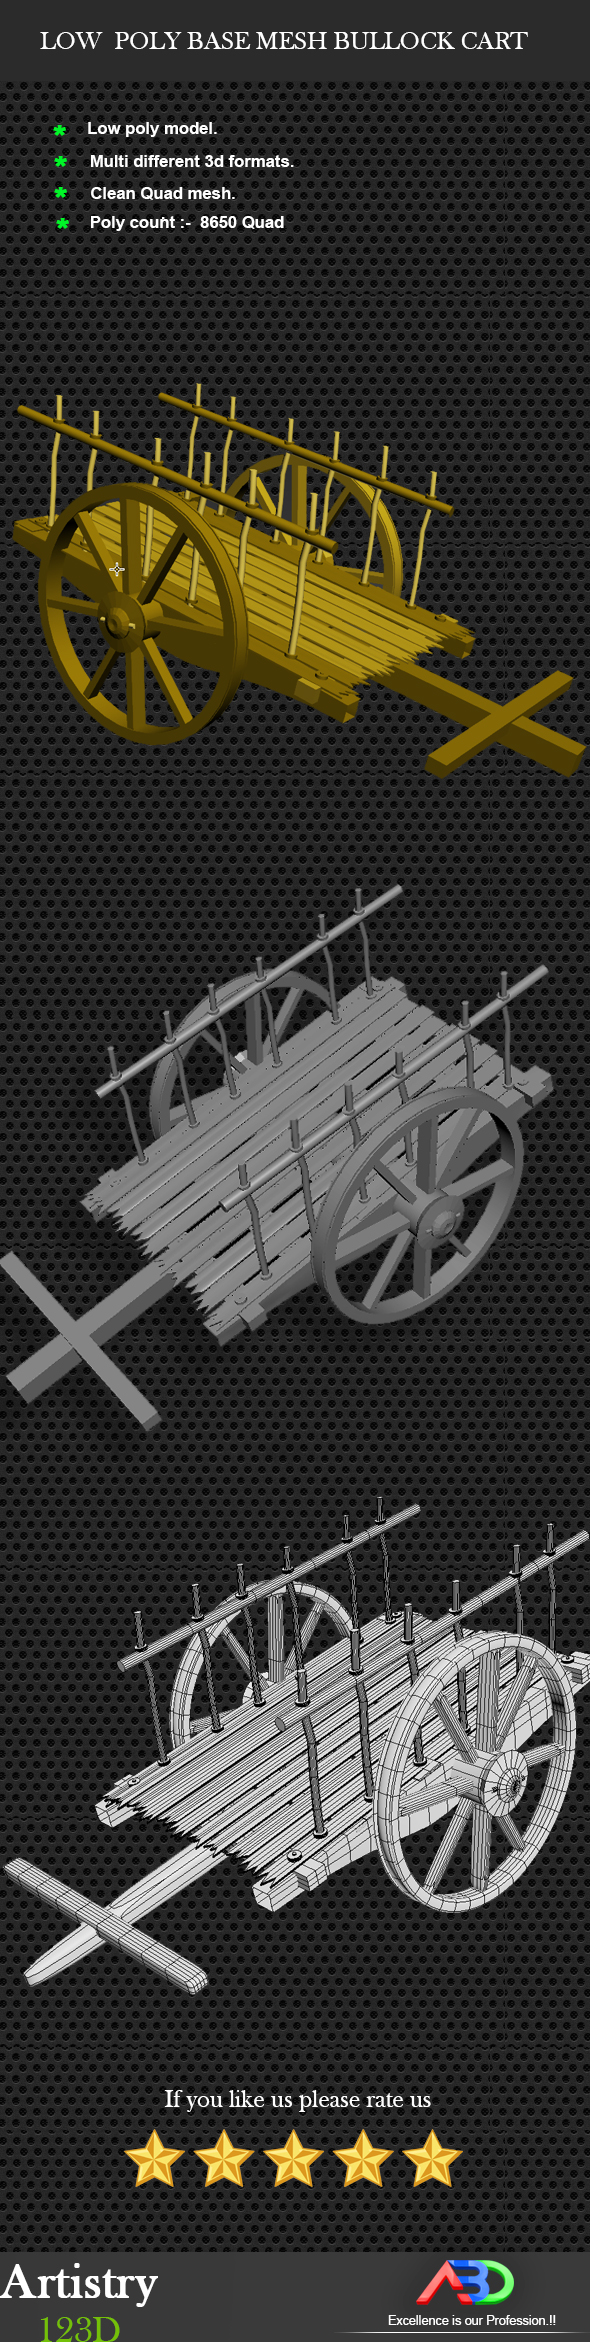 Low Poly Base Mesh Bullock cart (Cow cart) - 3DOcean Item for Sale